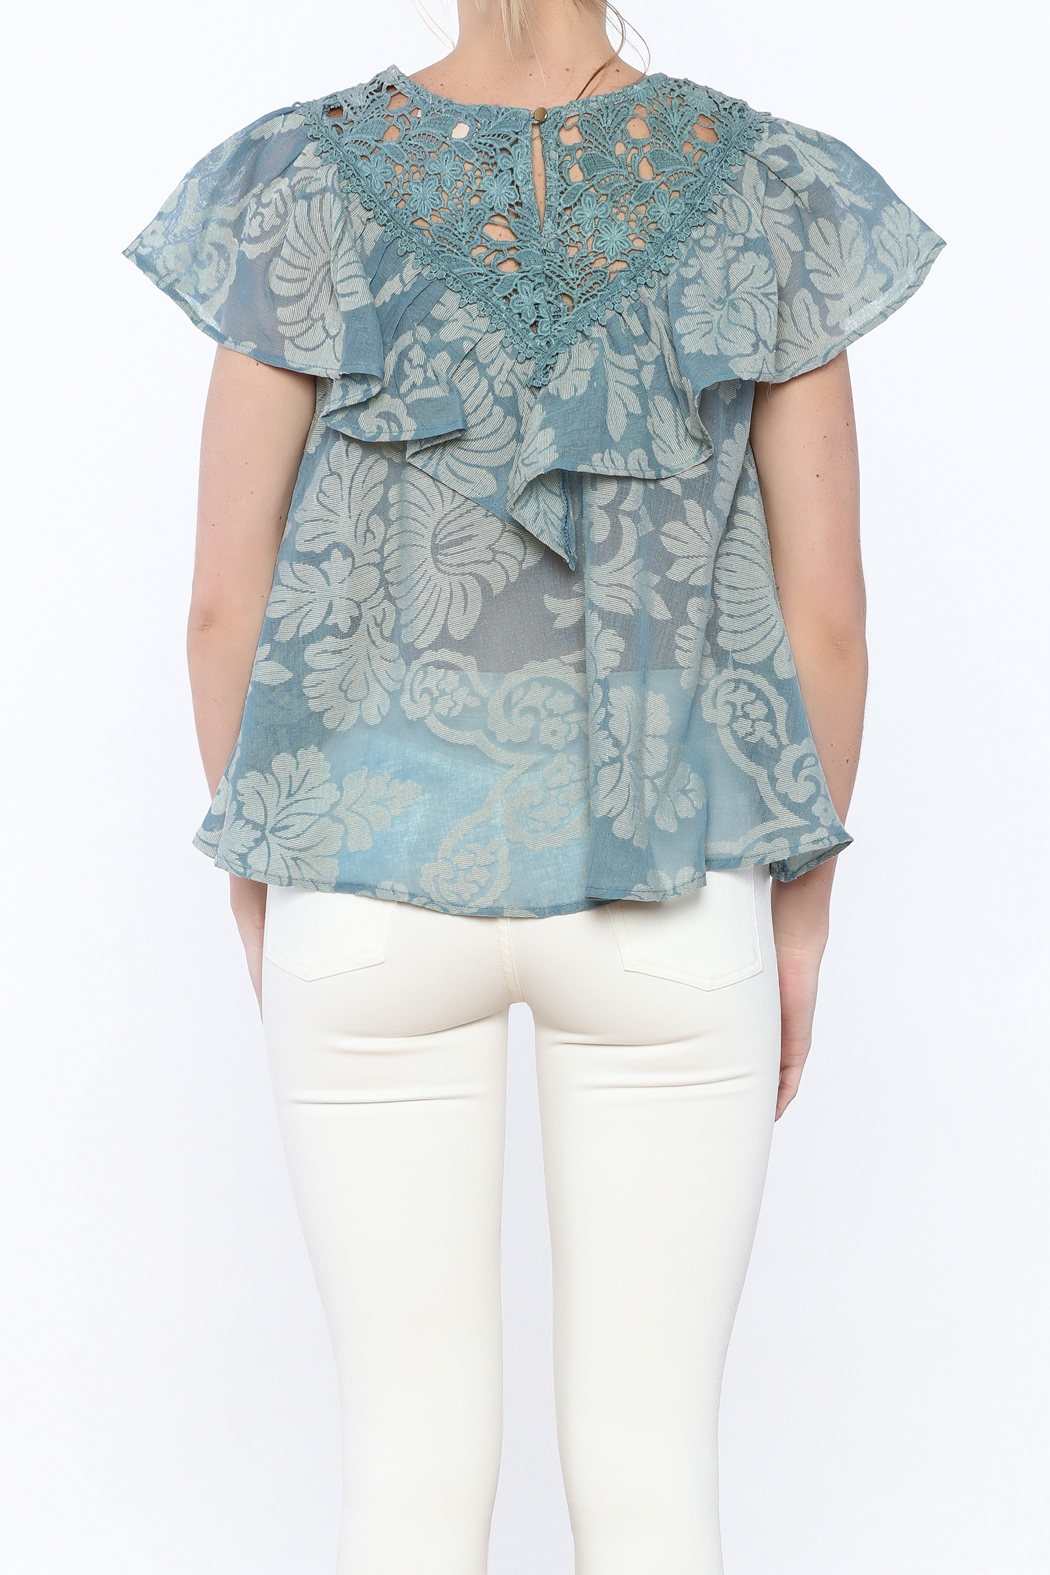 Champagne & Strawberry Serenity Blouse - Back Cropped Image